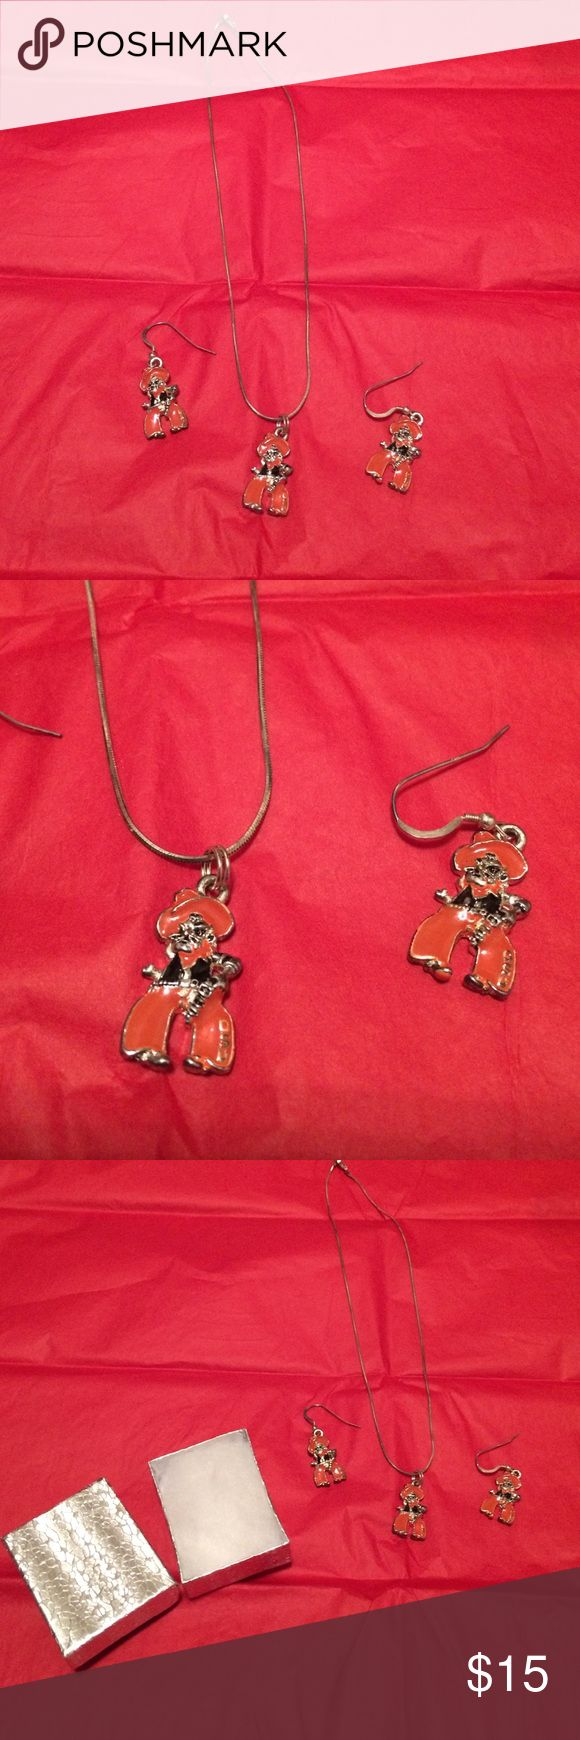 Oklahoma State University jewelry Adorable Oklahoma State University necklace and earrings set brand new never worn comes with gift box Jewelry